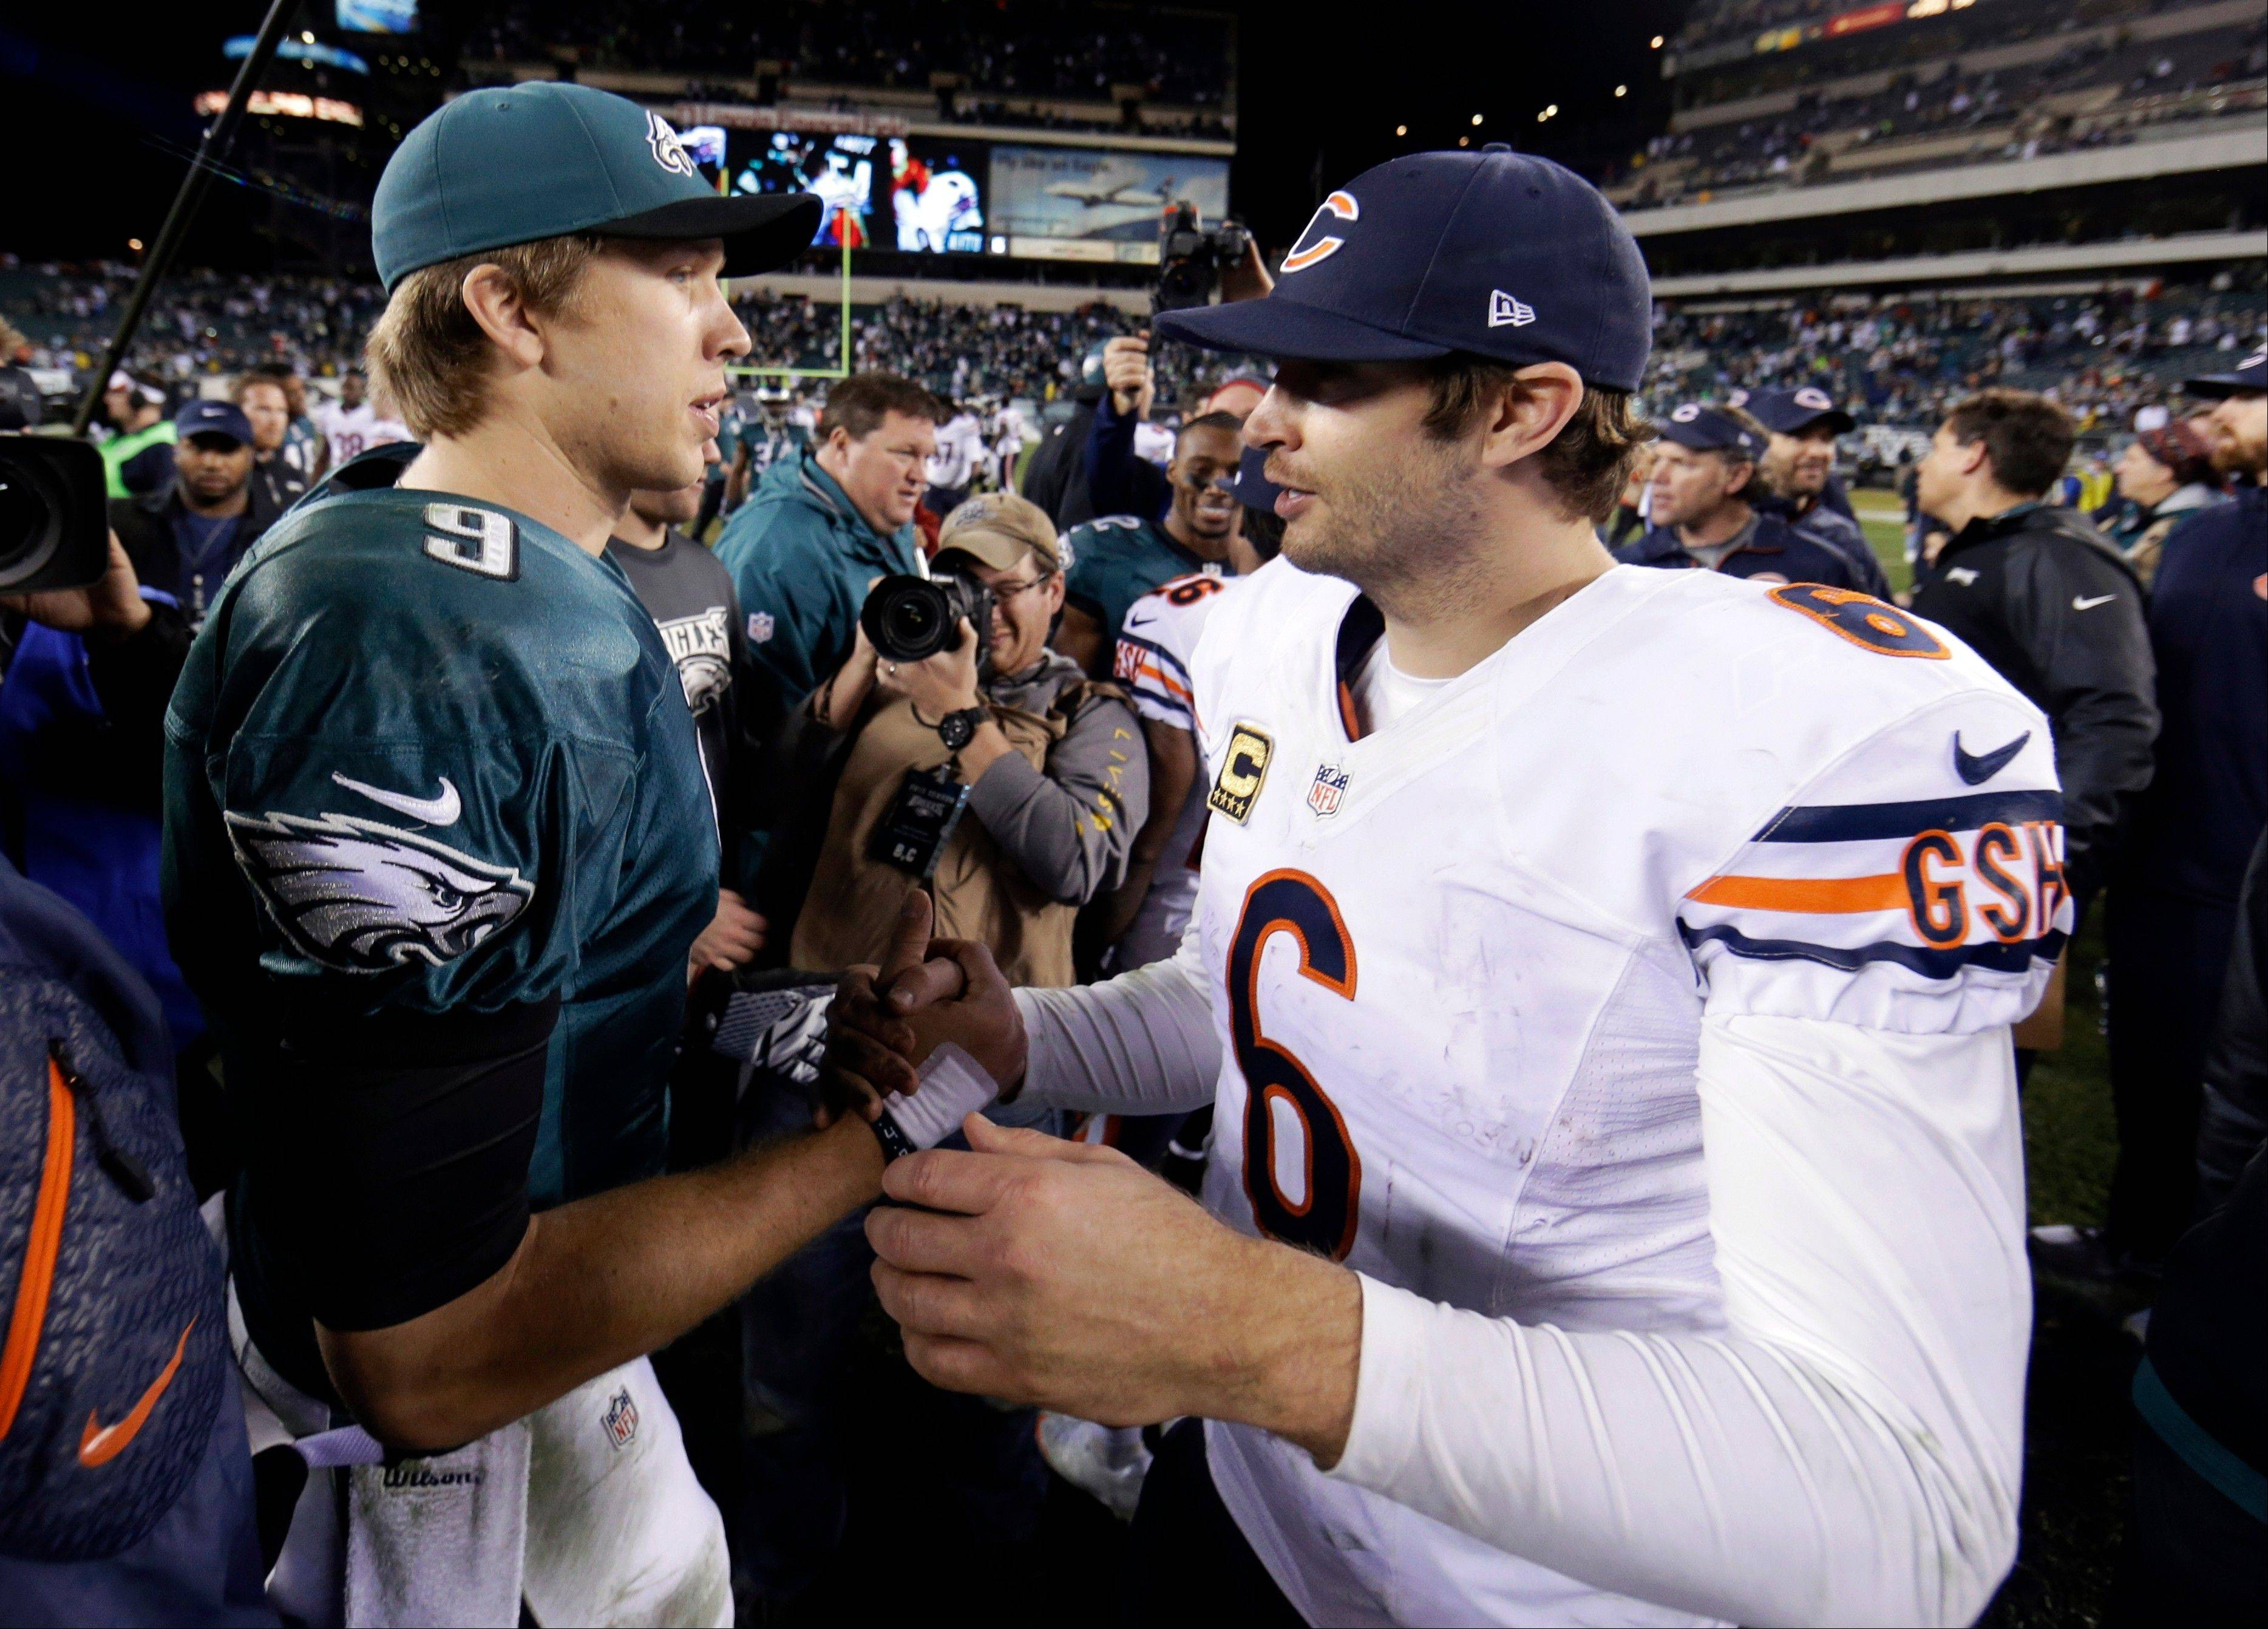 Bears quarterback Jay Cutler, right, meets with Philadelphia Eagles QB Nick Foles after Sunday's game.